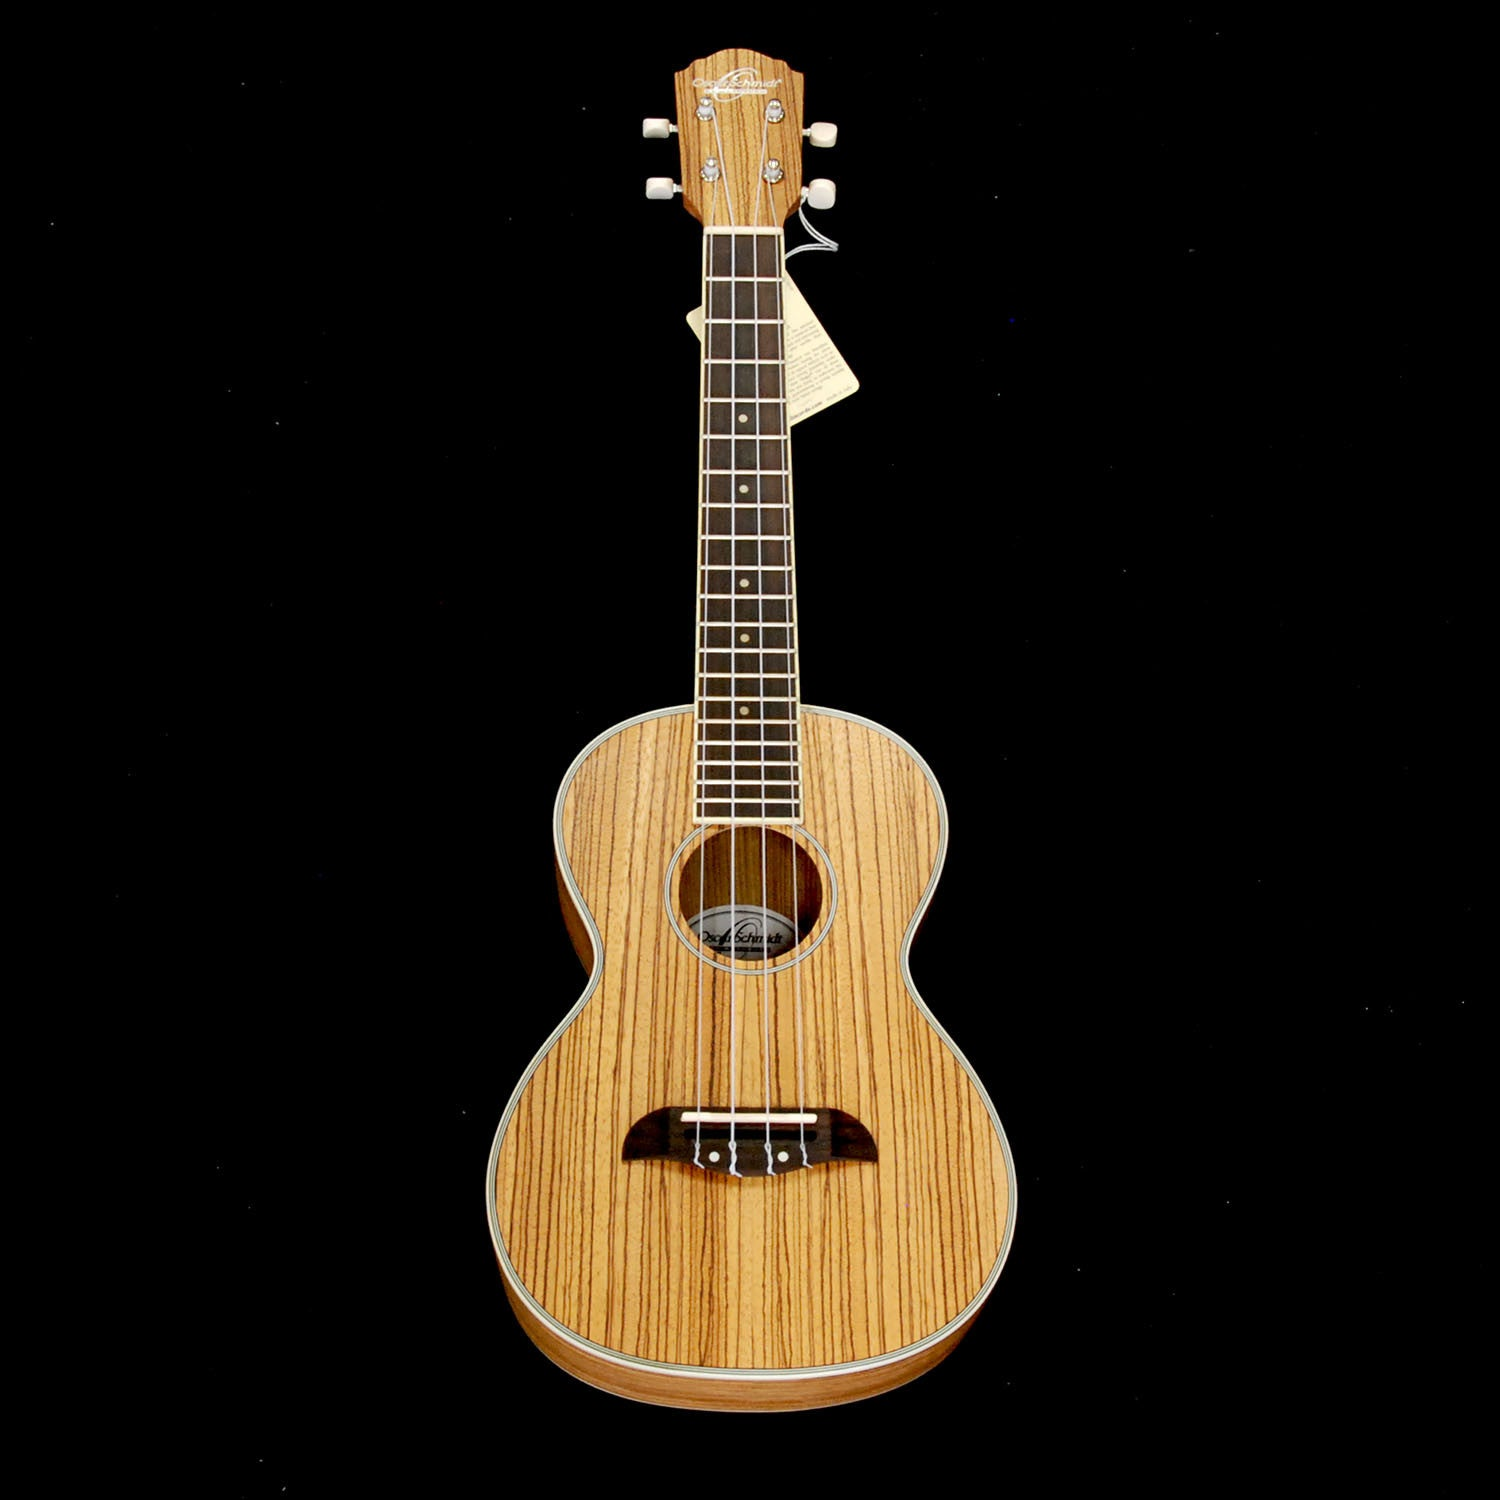 Shop online for Oscar Schmidt OU320 Concert Ukulele Striped Rosewood today.  Now available for purchase from Midlothian Music of Orland Park, Illinois, USA